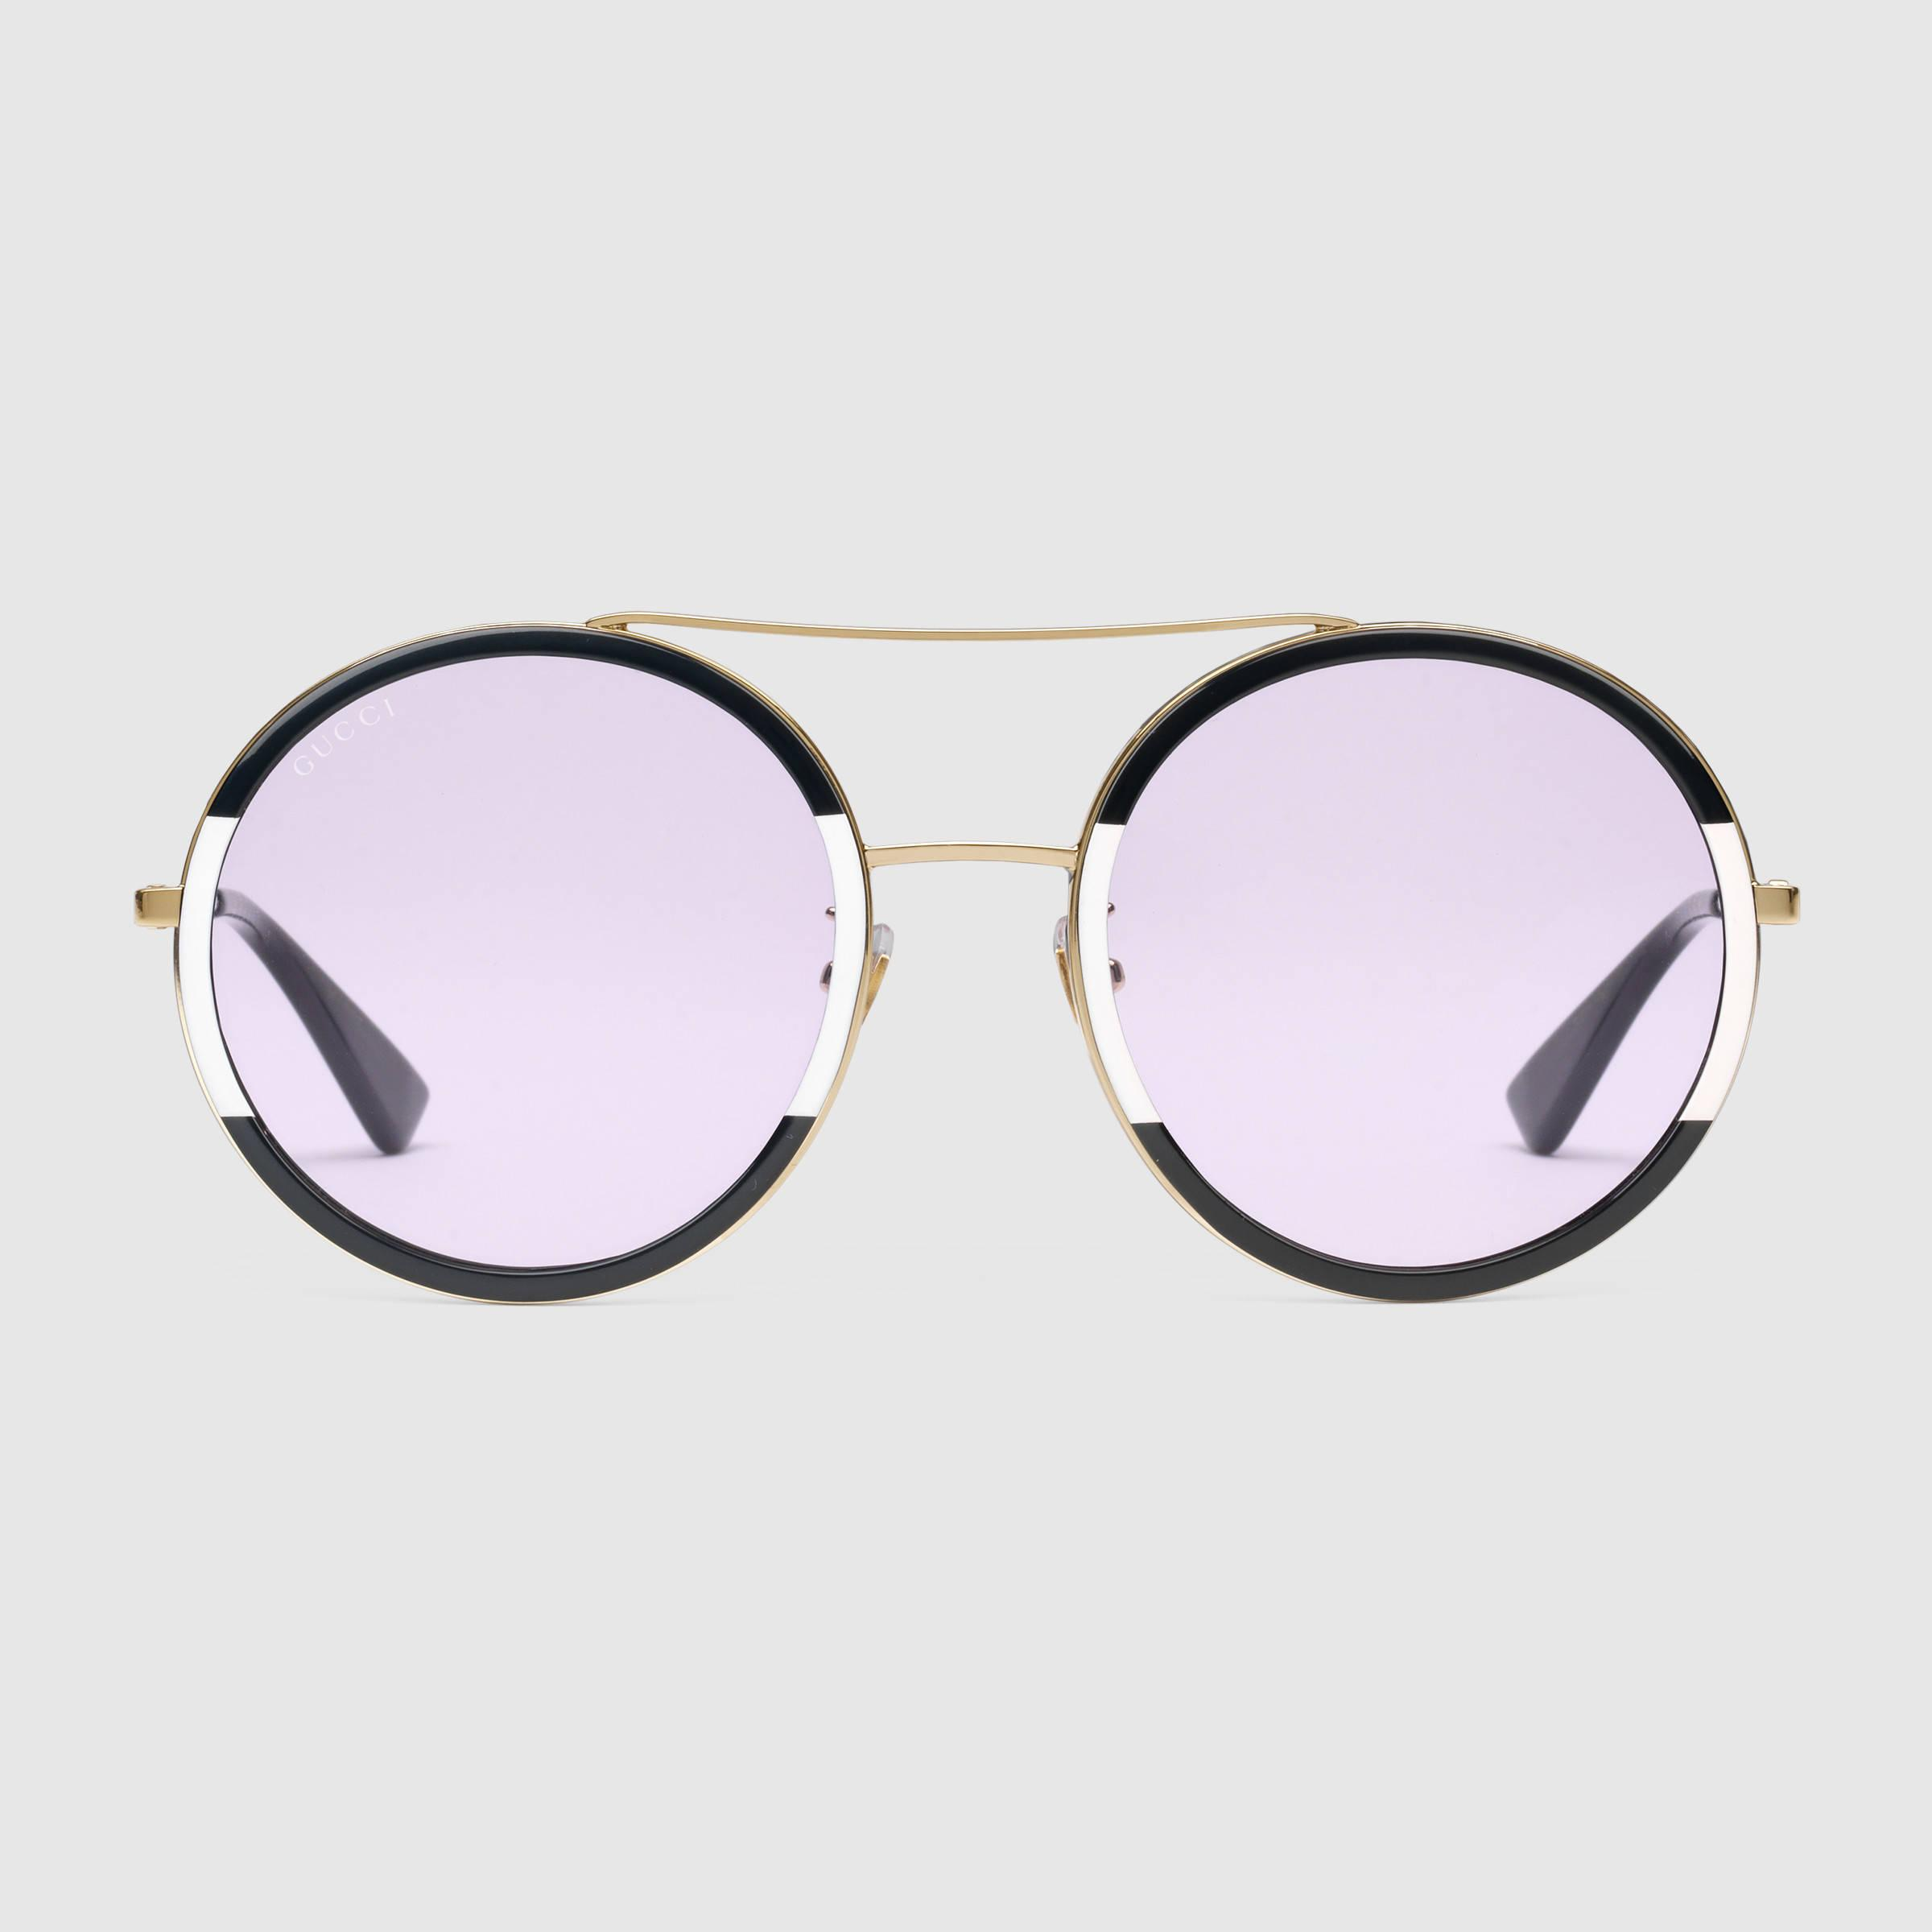 Glasses Frame Gucci : Gucci Round-frame Sunglasses in Metallic Lyst